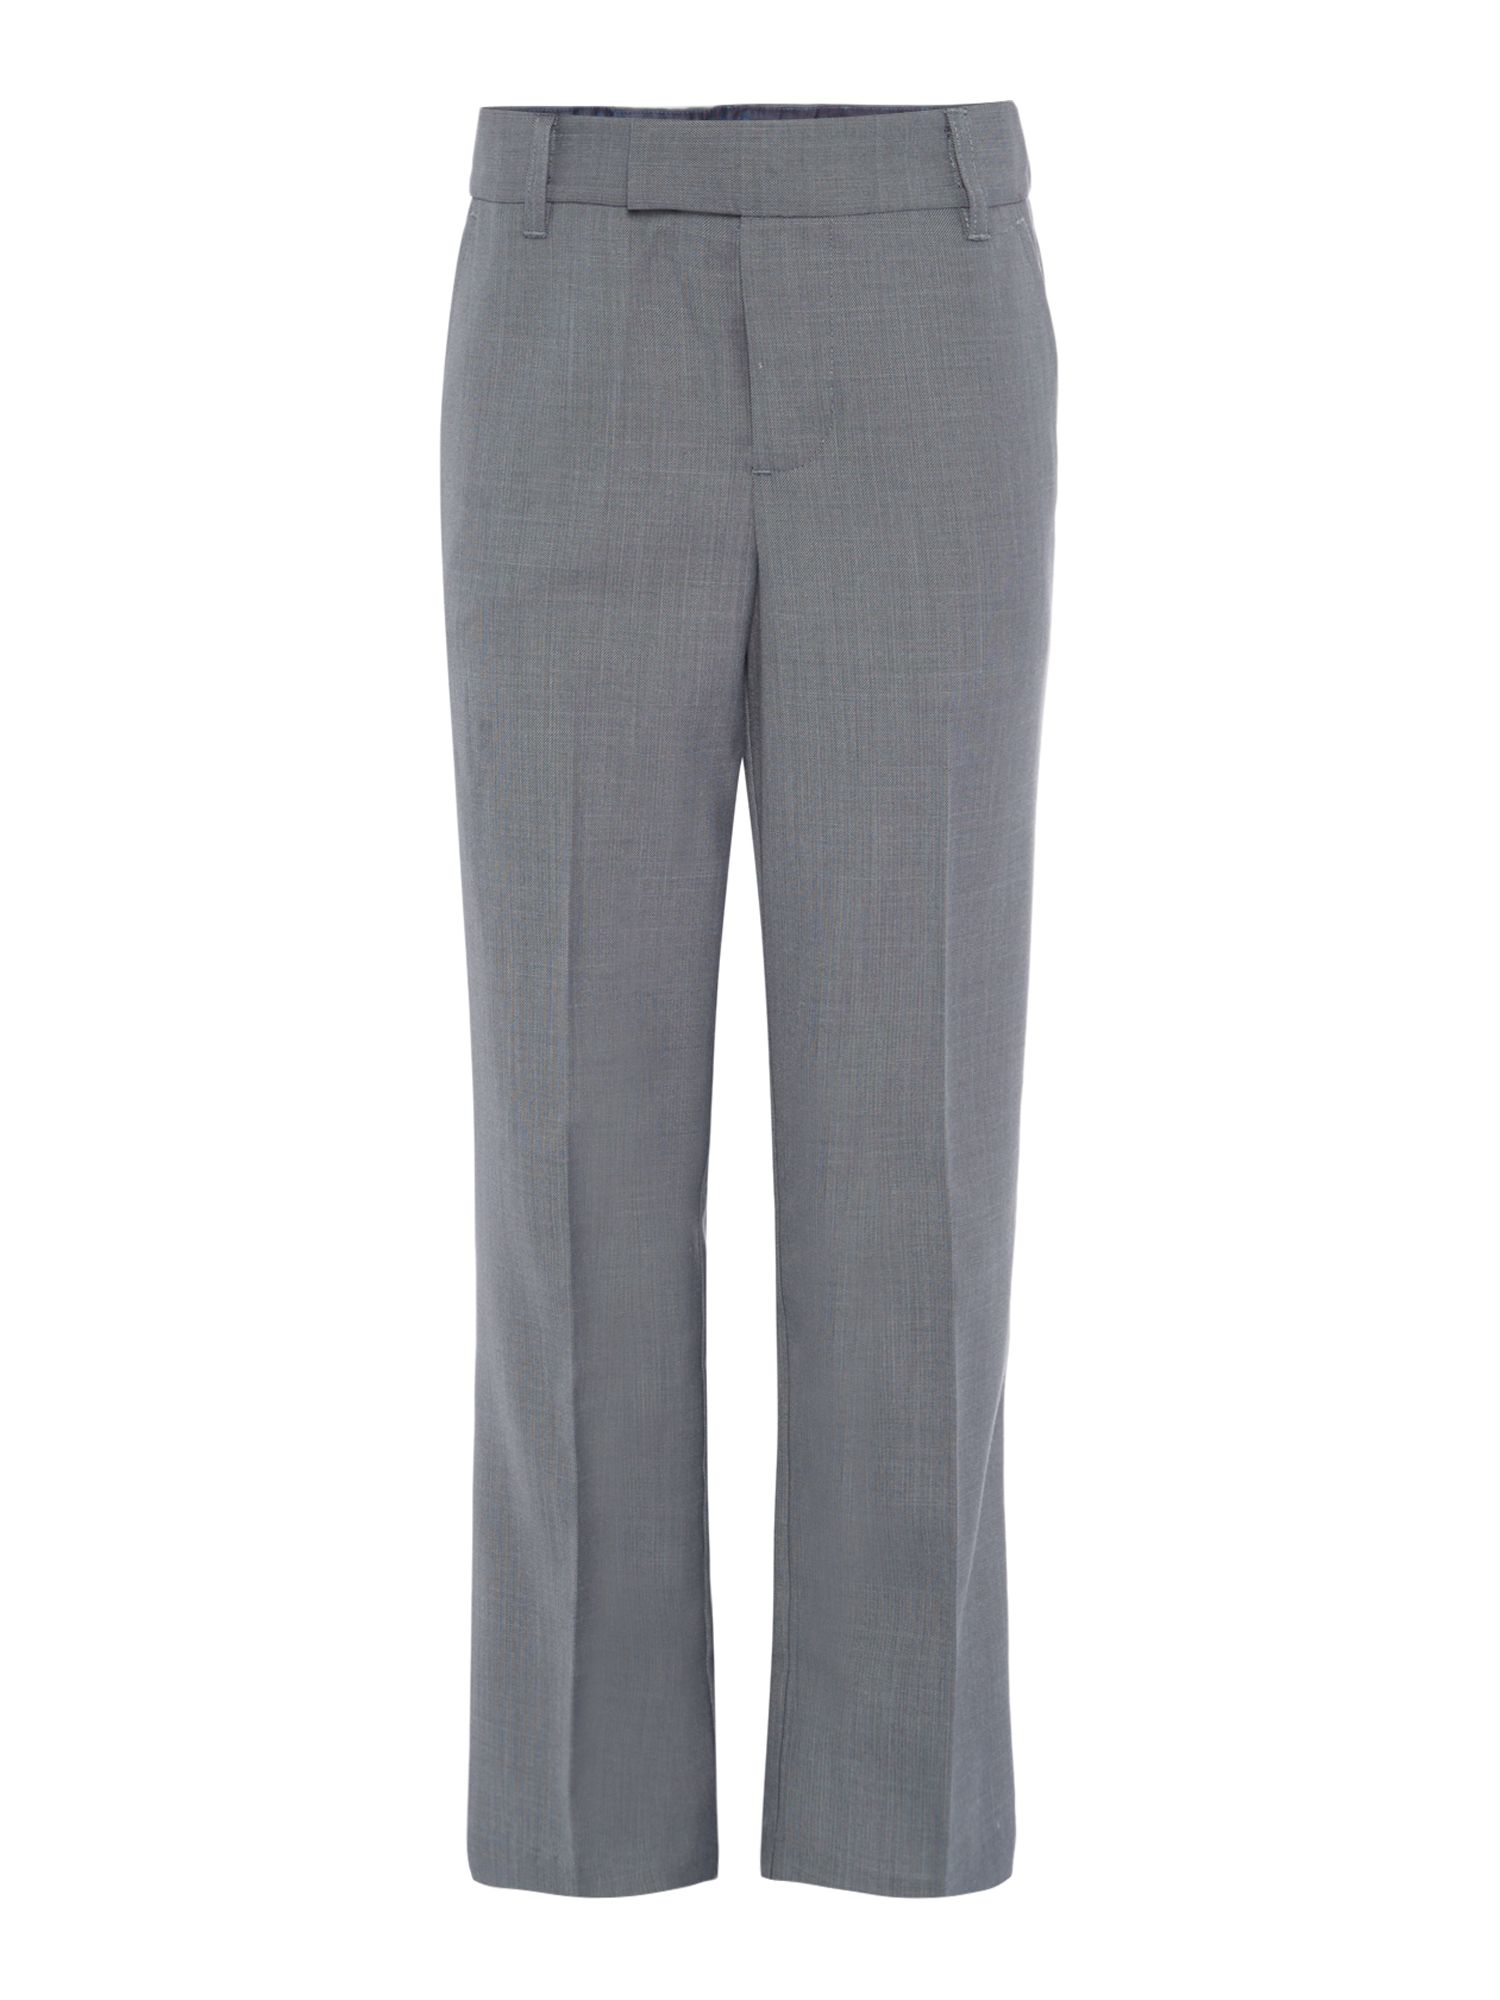 Howick Junior Howick Junior Boys end on end suit trousers, Grey